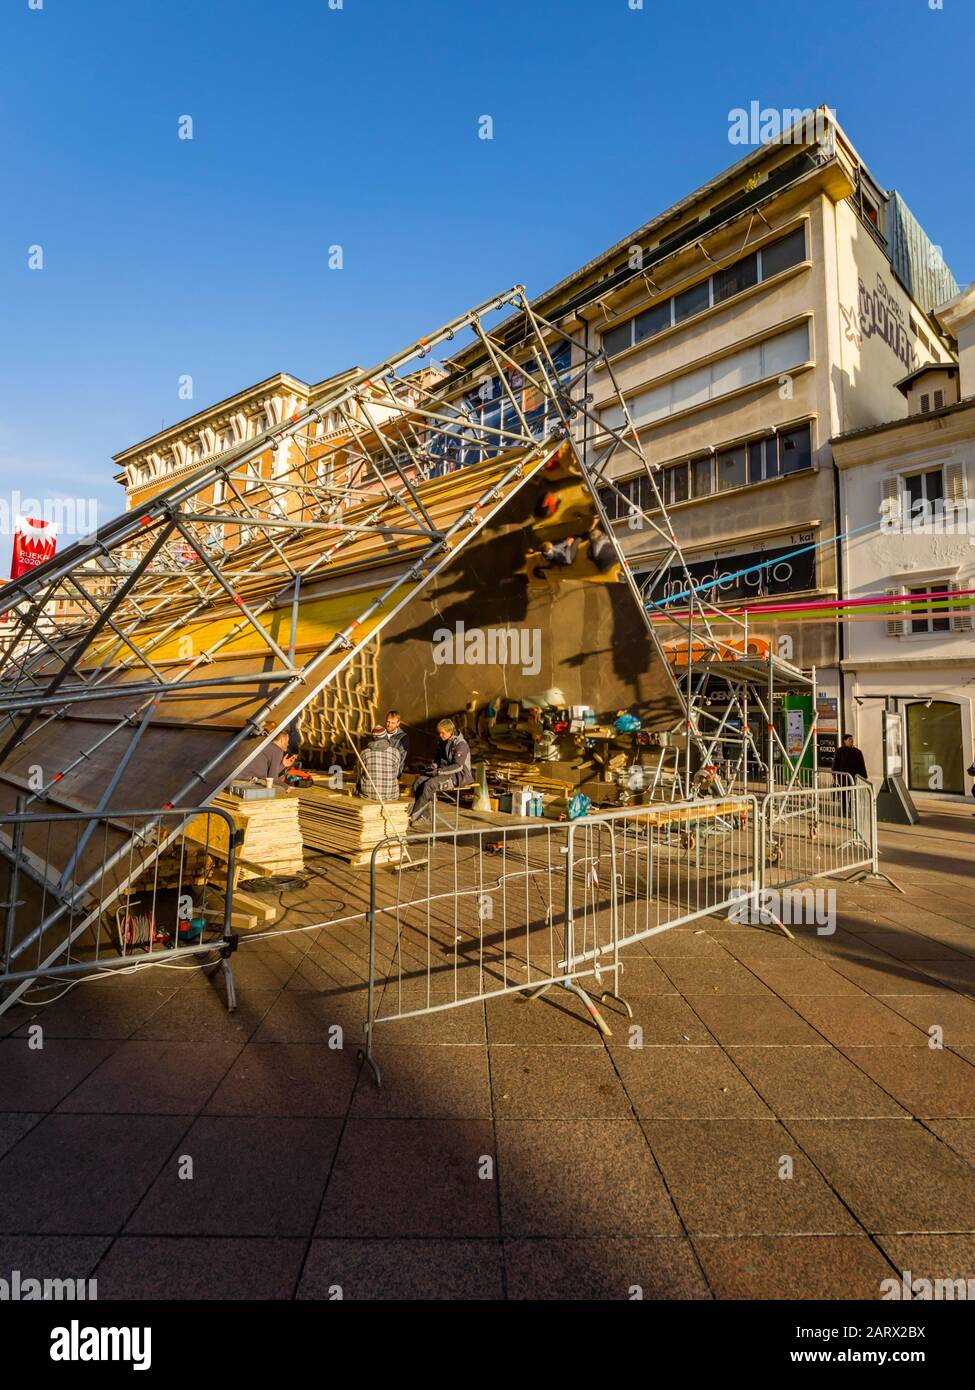 European Capital of Culture preparations before opening EPK 2020 Rijeka in Croatia Stock Photo